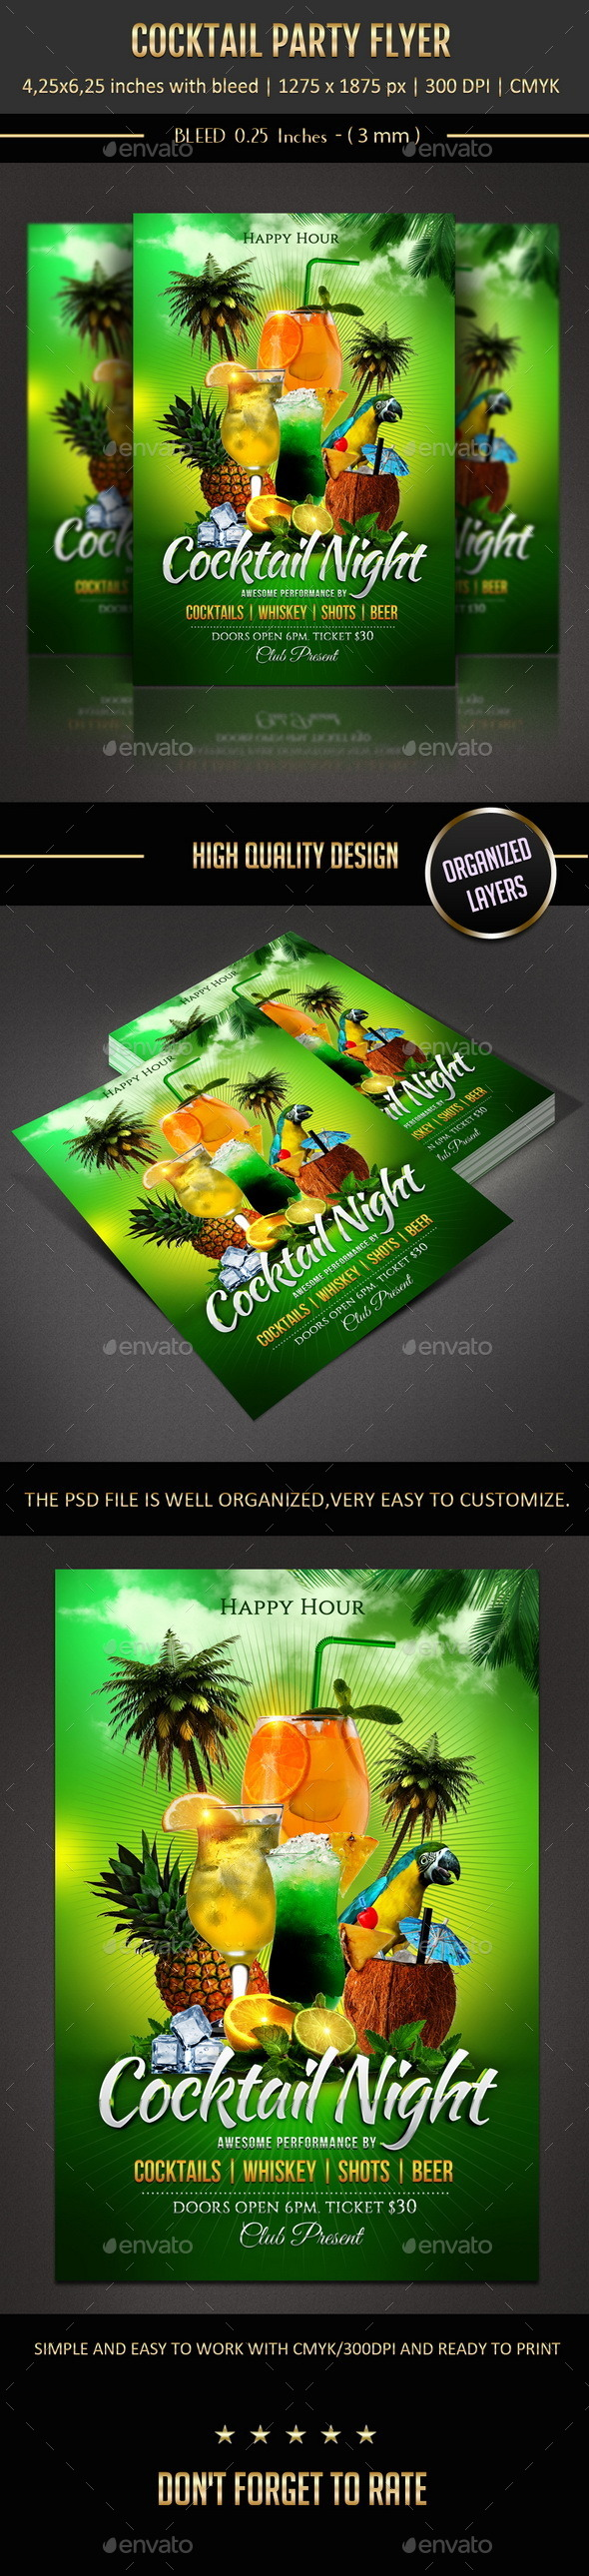 Cocktail Party Flyer - Flyers Print Templates